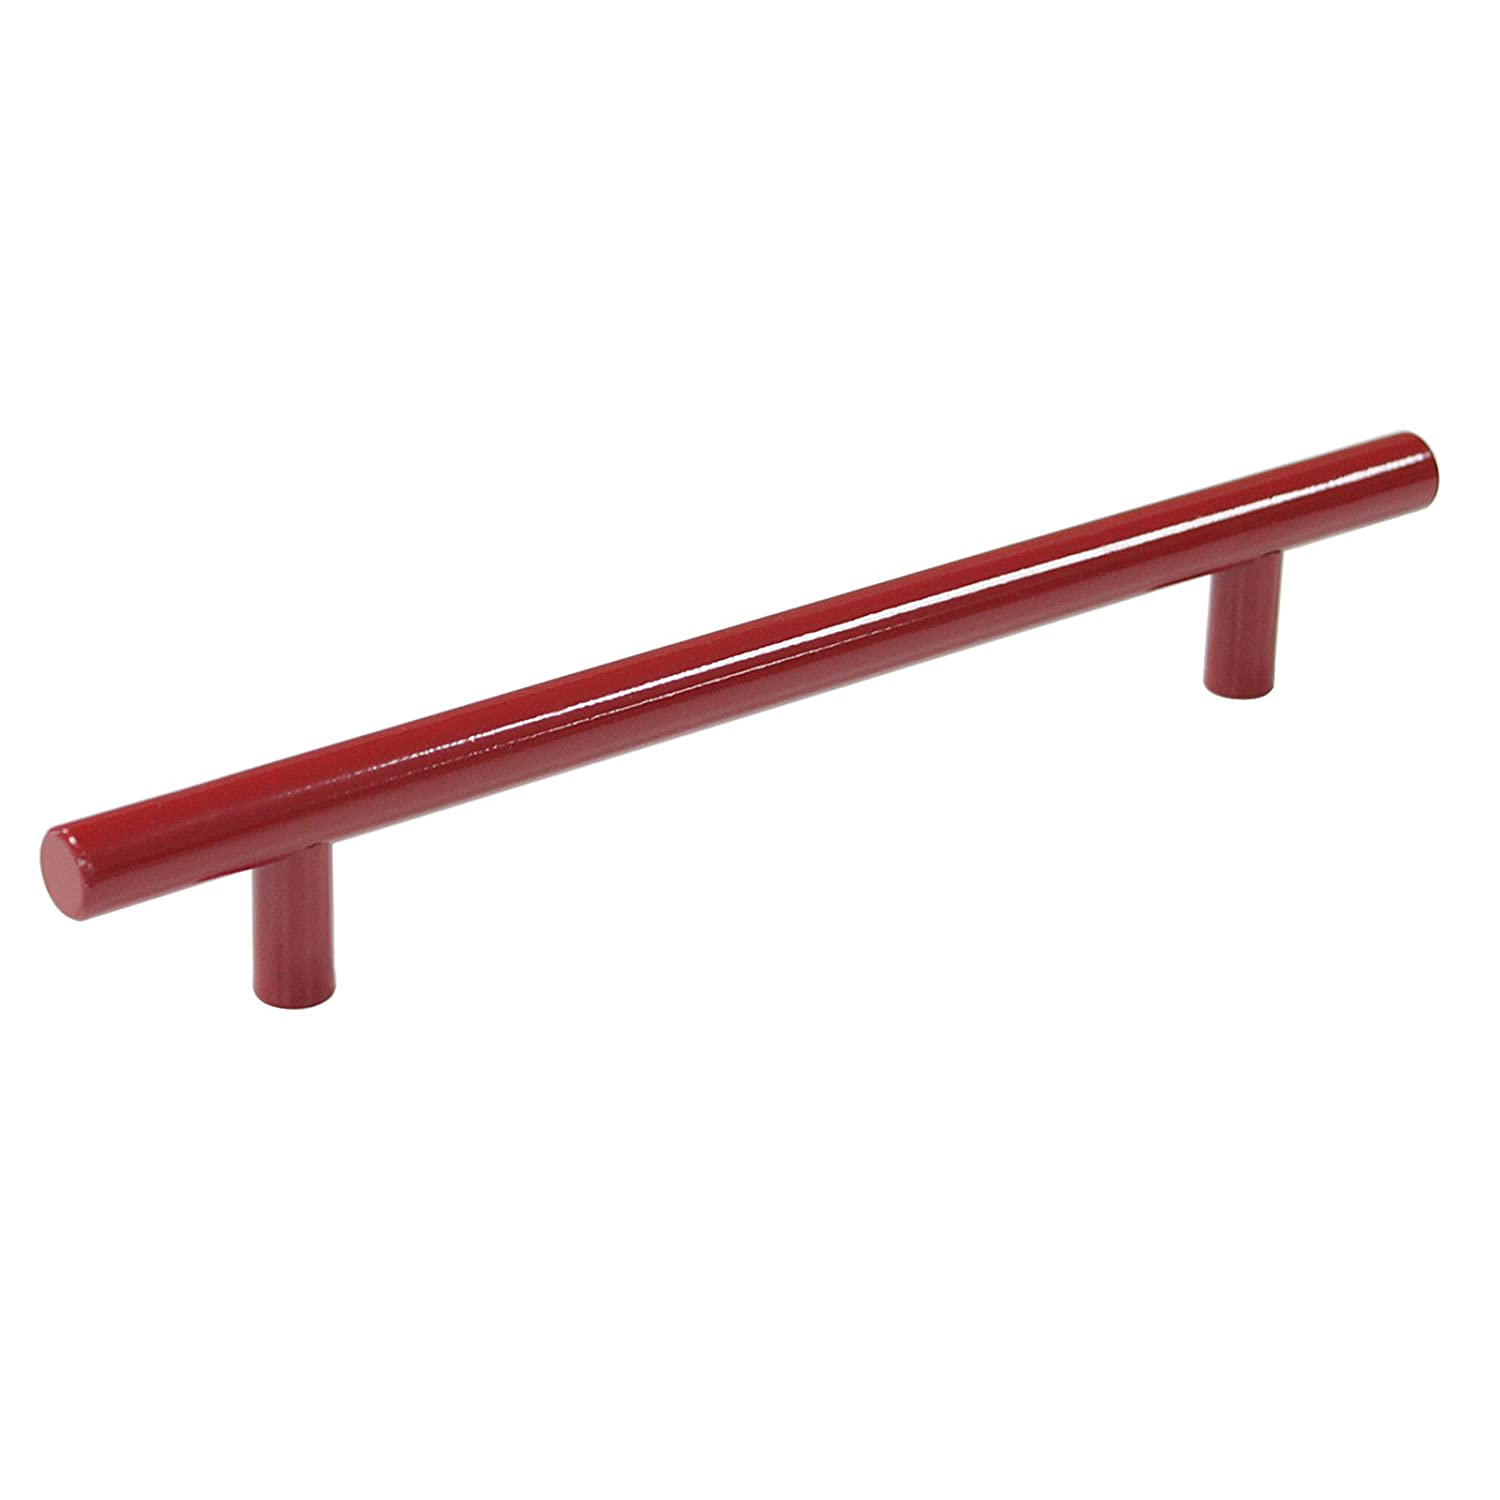 Probrico 5 PCS Hole Spacing 96mm 4' Red Stainless Steel Kitchen Cabinet T Bar Handle Diameter 12mm Drawer Pulls Knobs PD4483HRD96